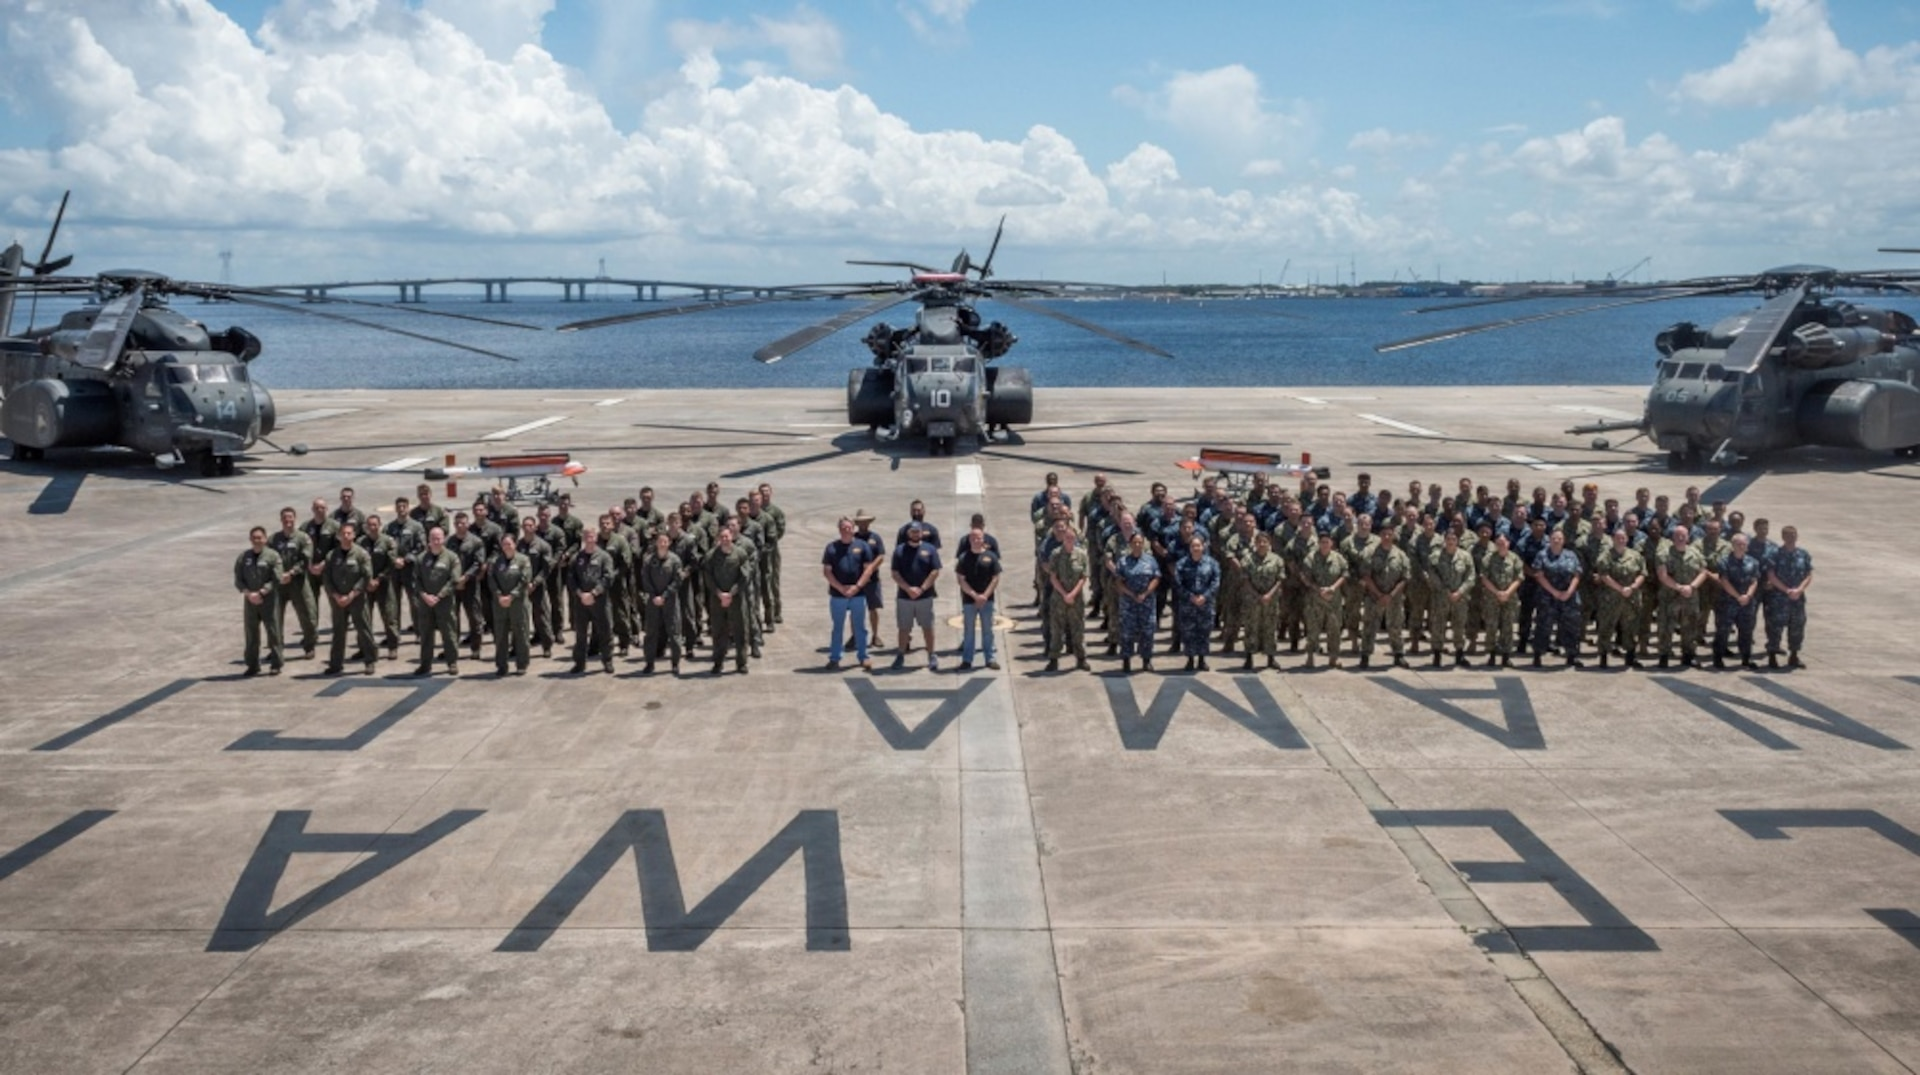 The AN/AQS-24C Mine Detecting Set test team, along with Helicopter Mine Countermeasures Squadron-15 (HM-15), posed for a team photo at the conclusion of a successful test event in Panama City, Florida June, 24, 2018. Personnel pictured by groups from left to right are: HM-15 Pilots and Aircrew, Naval Surface Warfare Center Panama City Division Test Team, and HM-15 Maintainers. U.S. Navy photo by Anthony Powers.